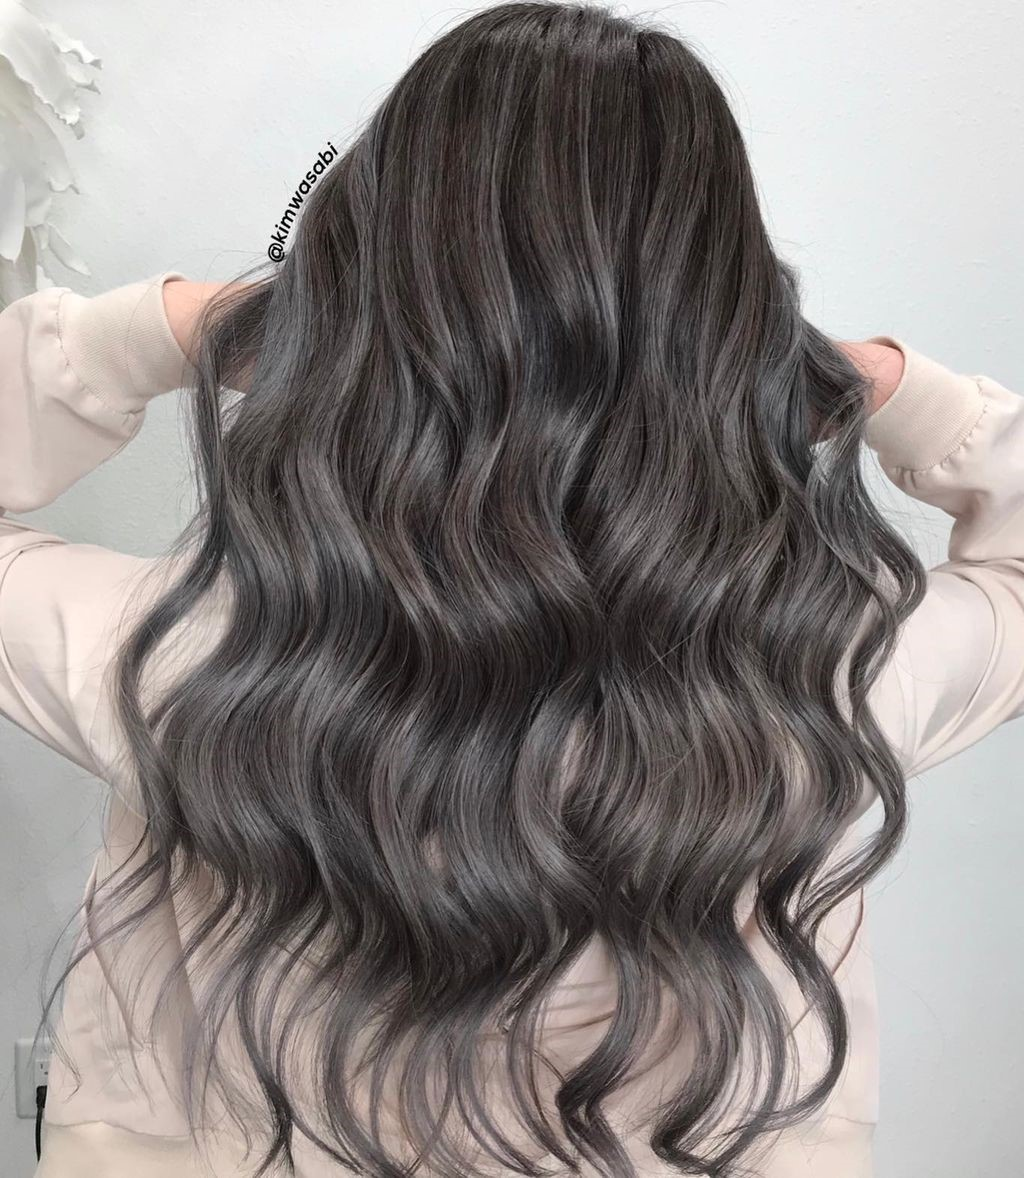 Brunette Hair with Ashy Babylights